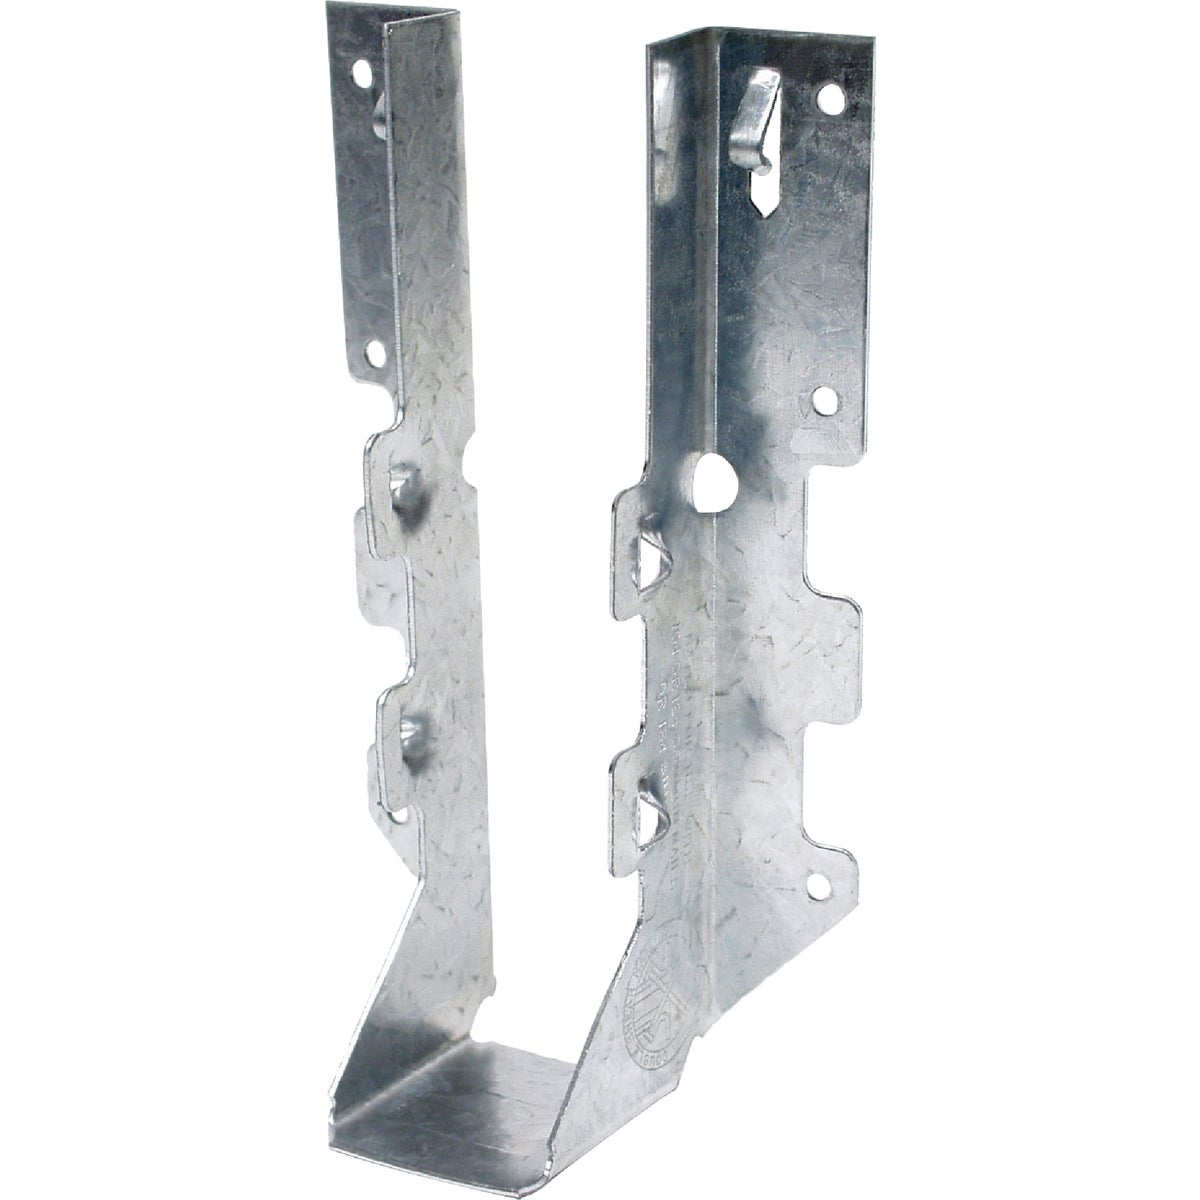 2X8 JOIST HANGER - LUS28 by Simpson Strong Tie